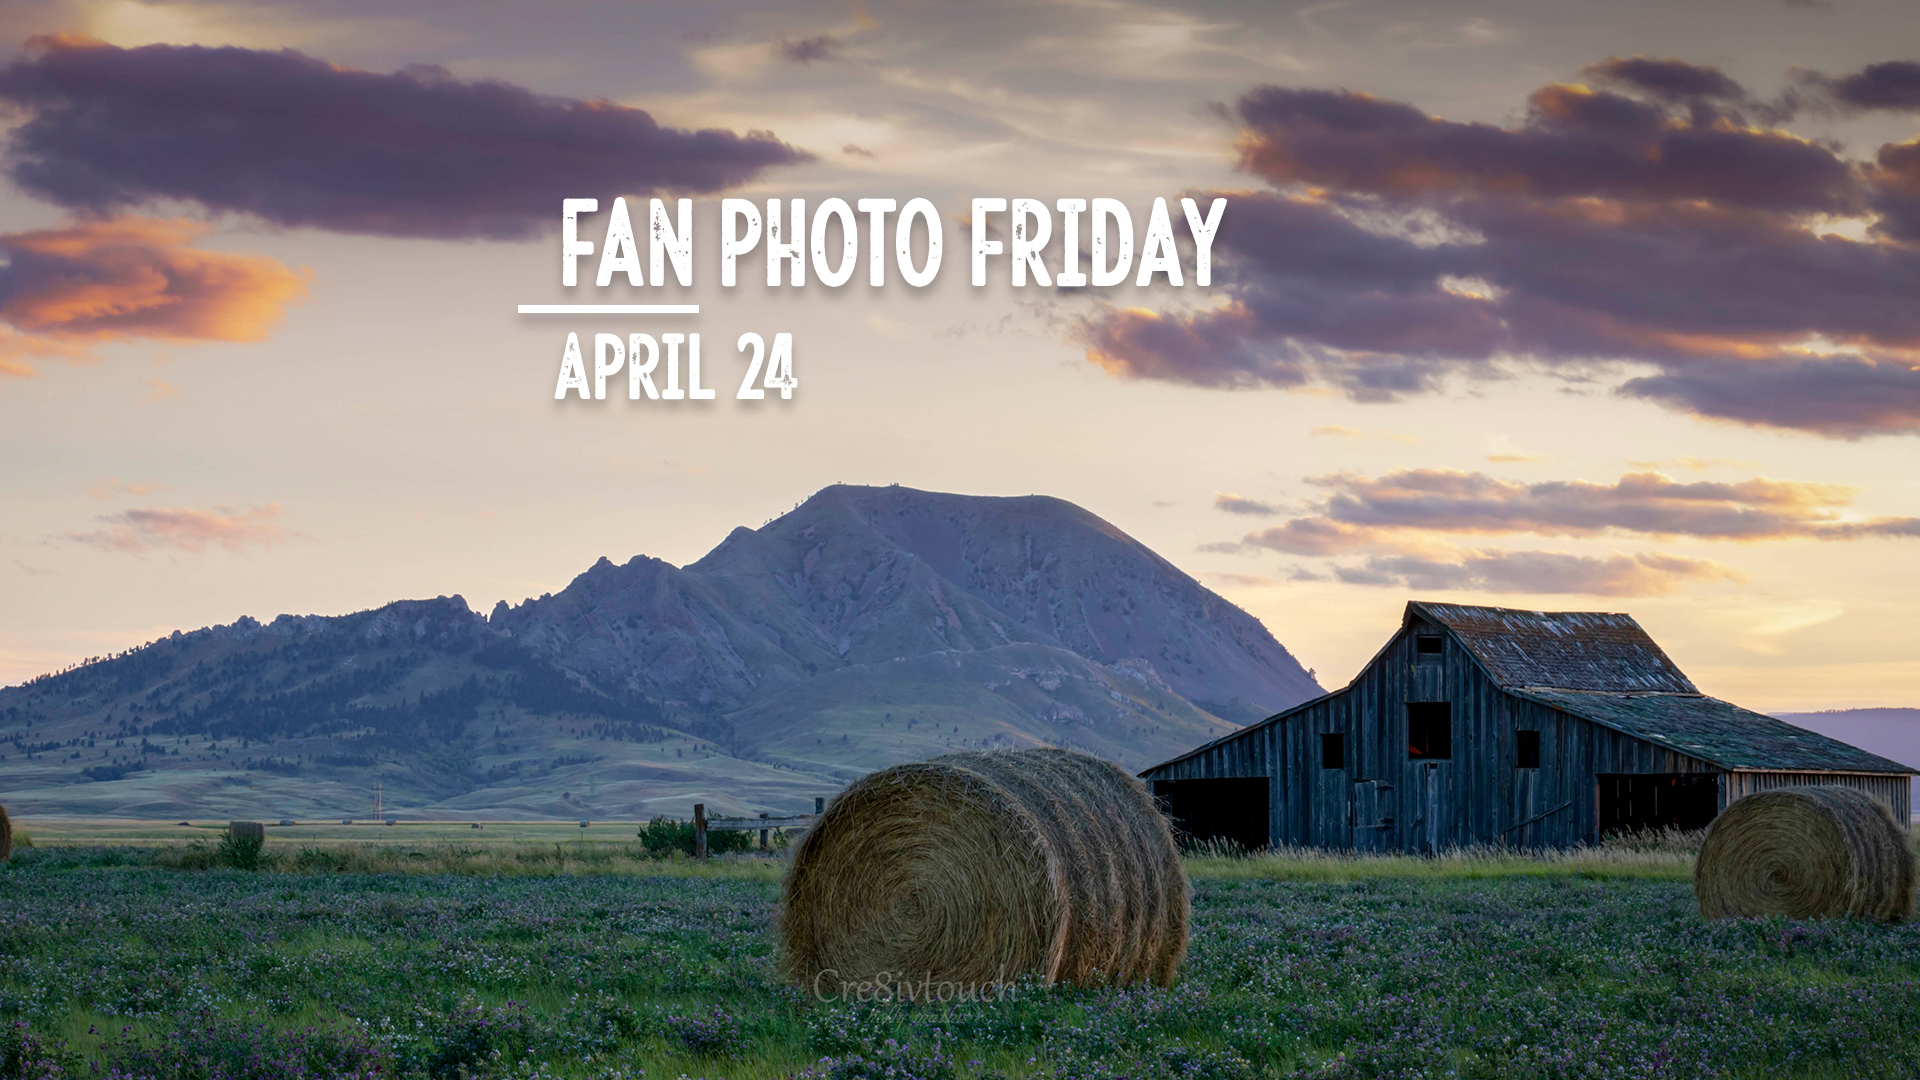 Fan Photo Friday | April 24, 2020